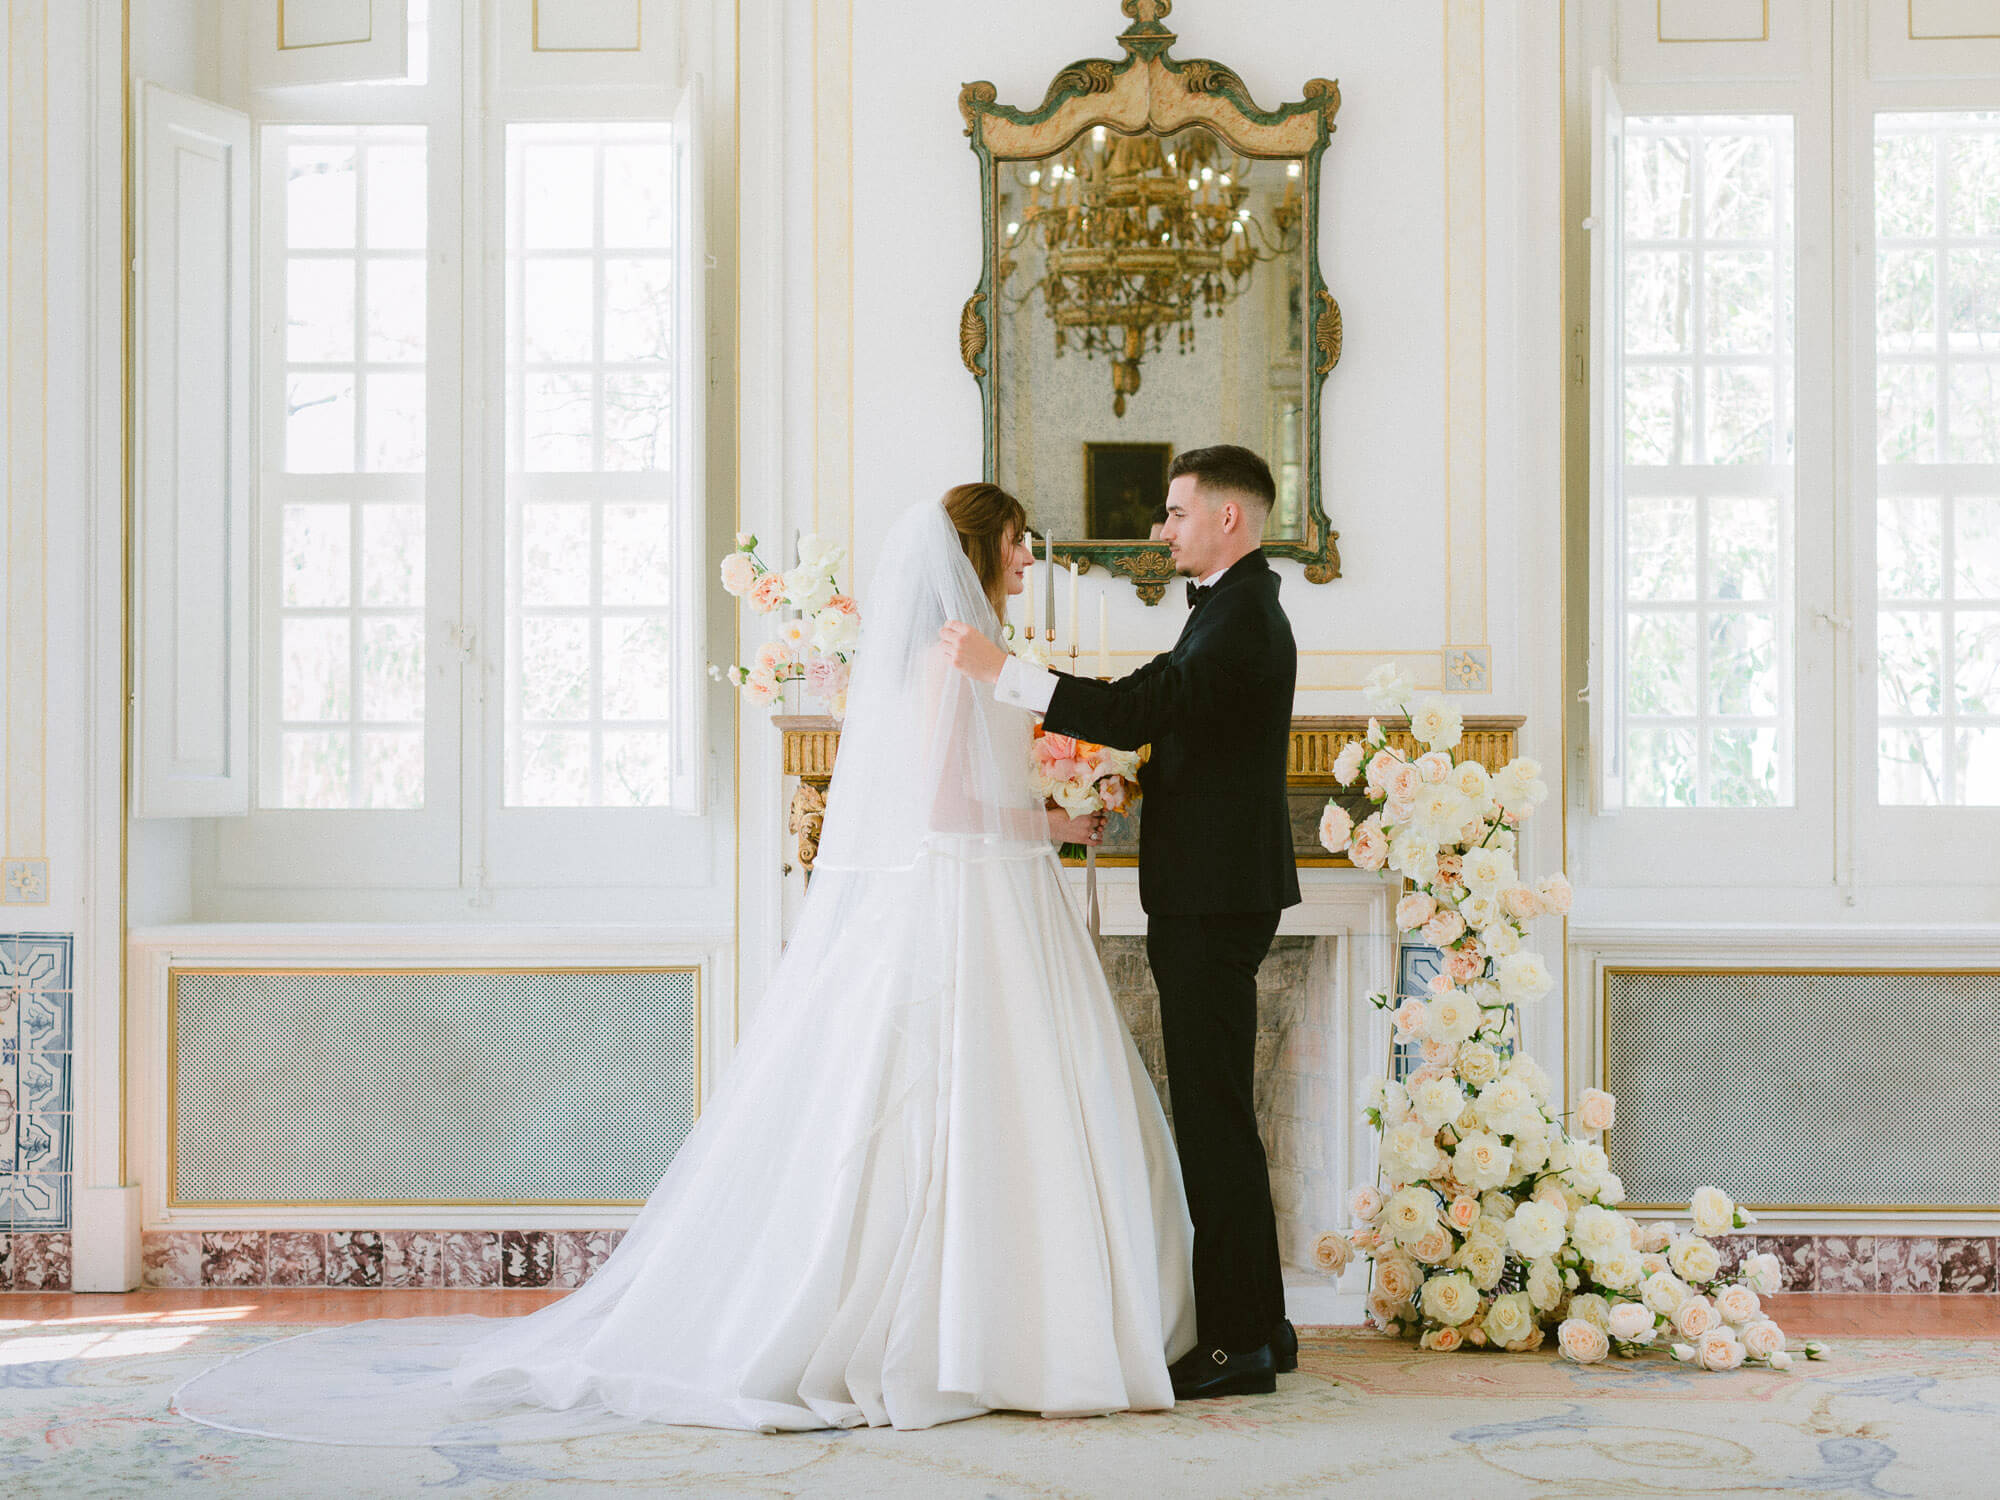 Bride and Groom in front of mantlepiece decorated with flowers in Palacio de Queluz by Portugal Wedding Photographers